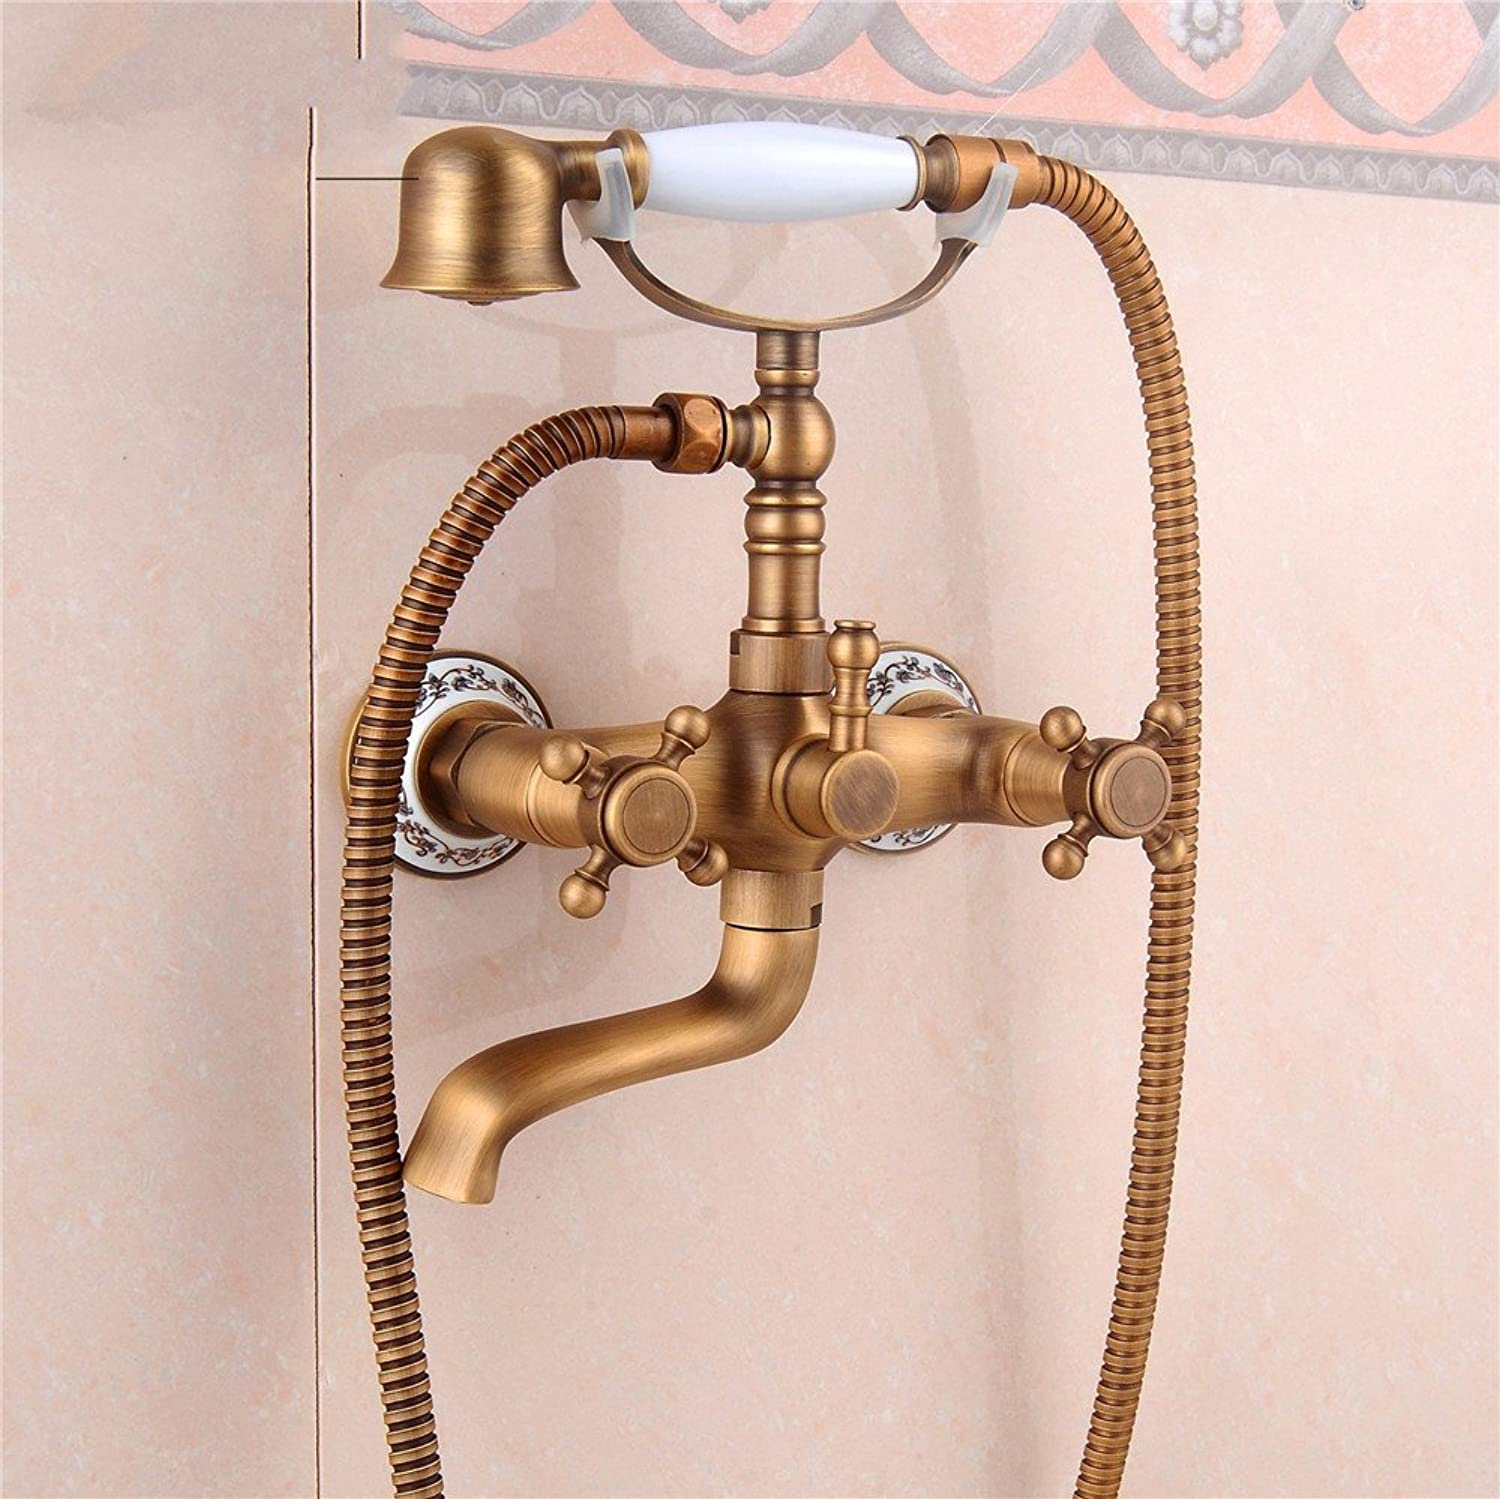 Bijjaladeva Bathroom Sink Vessel Faucet Basin Mixer Tap All copper antique Bath Faucet wall mounted easy mixing of hot and cold water valve shower faucet bluee-tiled shower kit